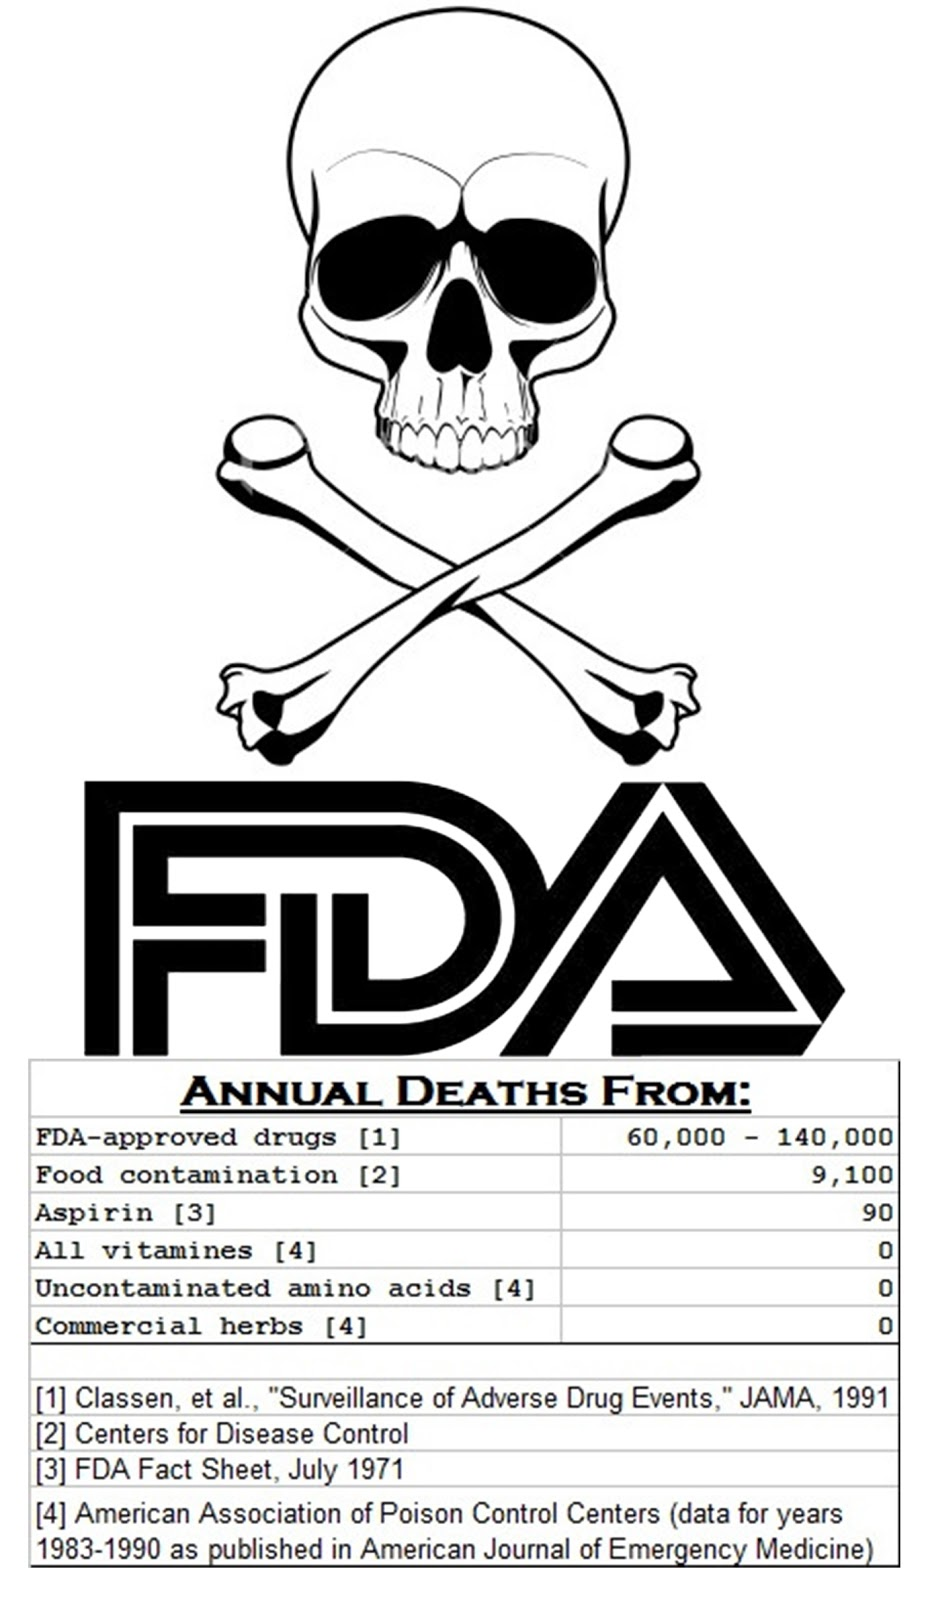 Life Changing Health News: How the FDA is Recklessly